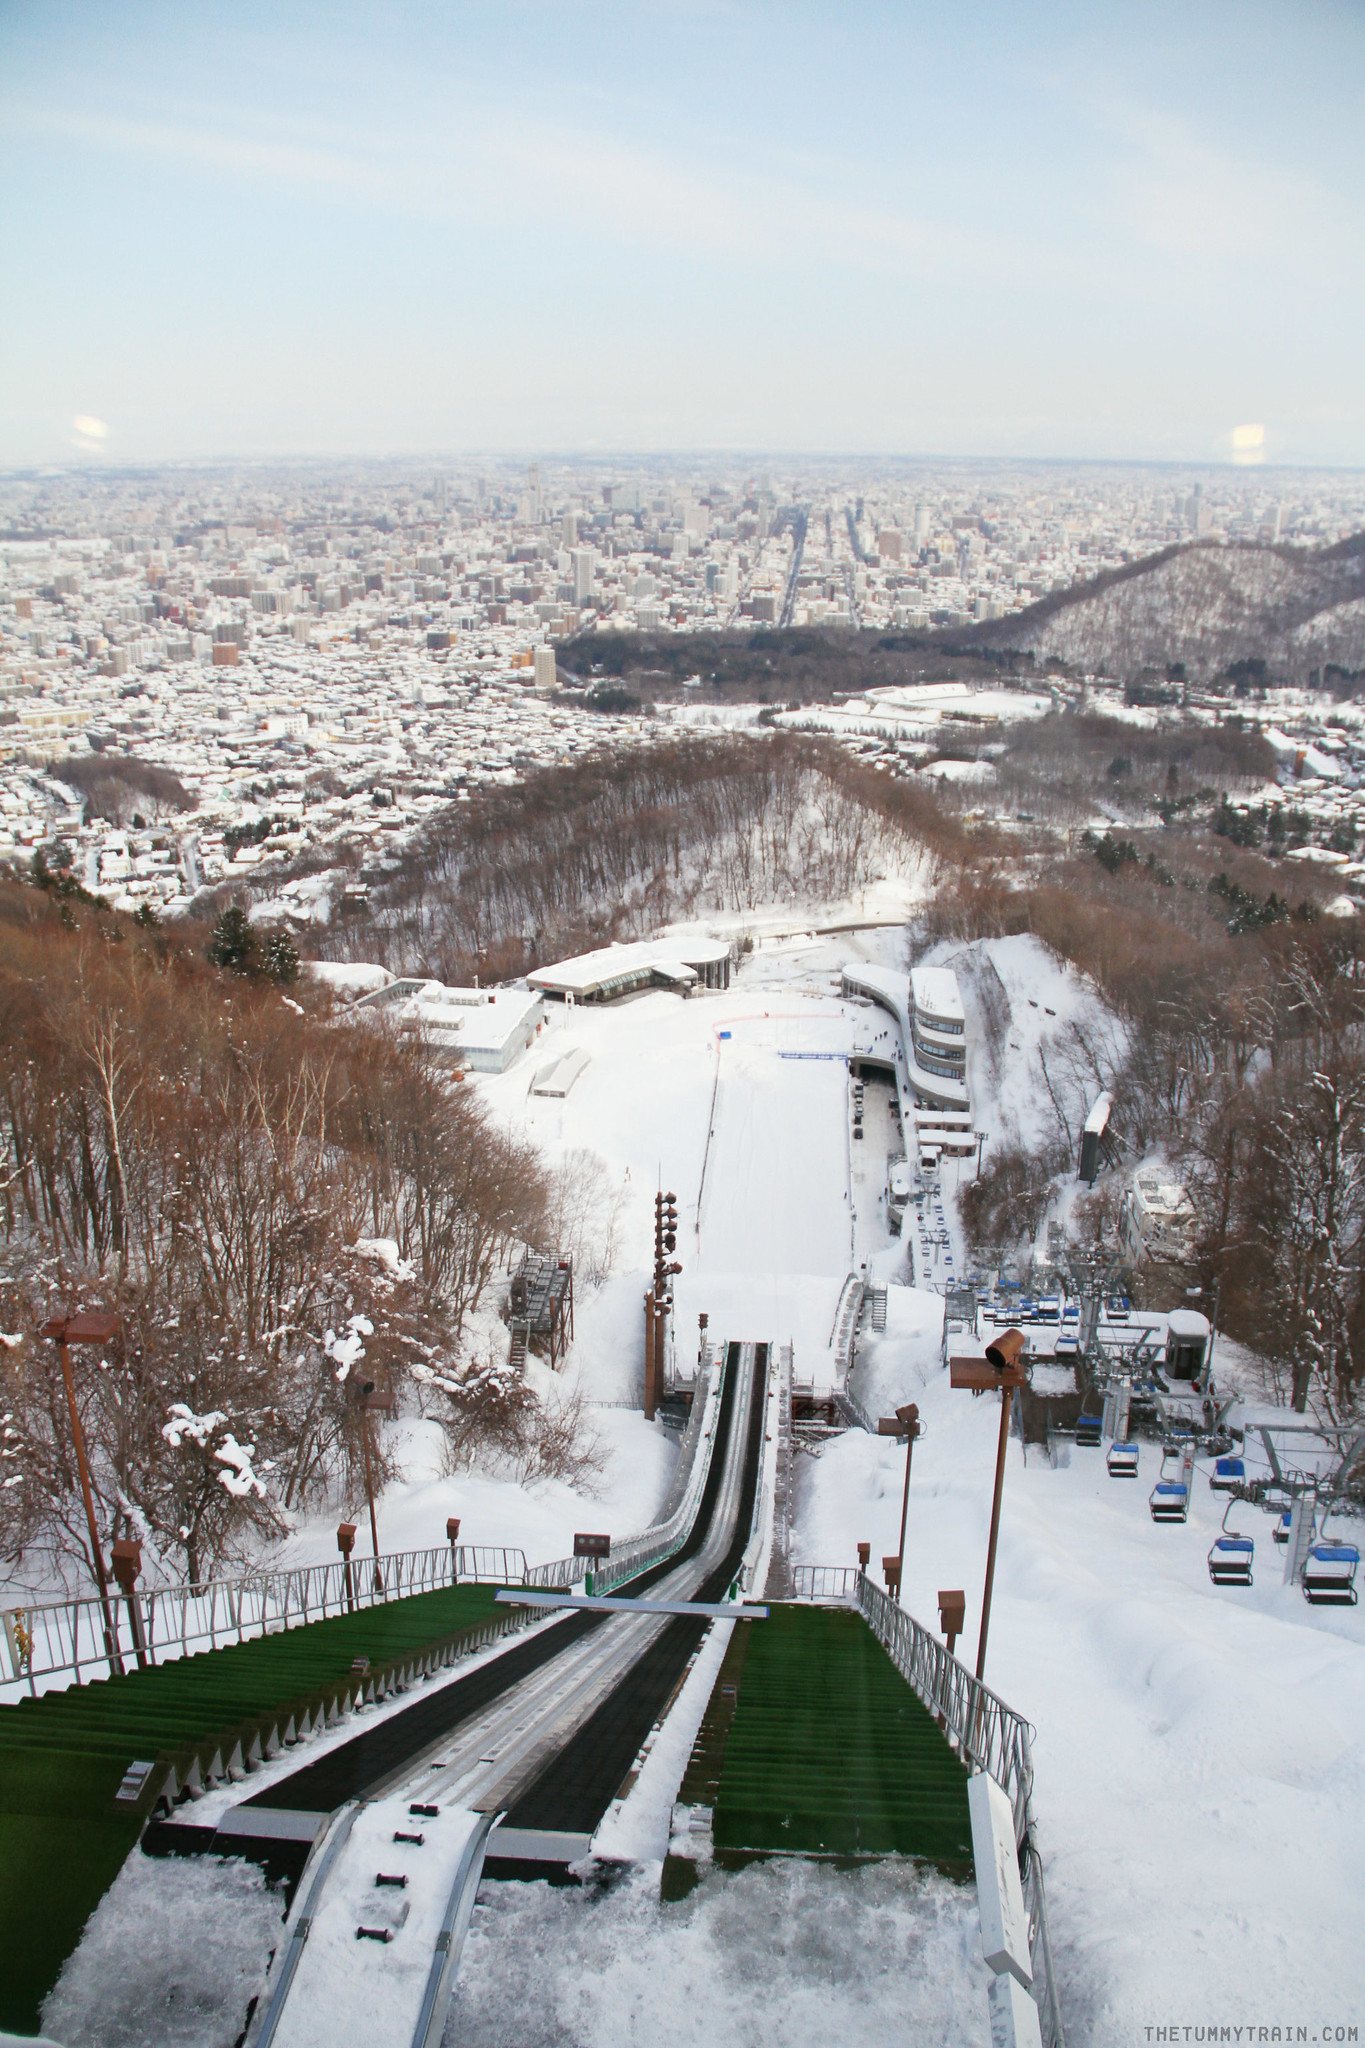 32763067592 9d09bd9244 k - Sapporo Snow And Smile: 8 Unforgettable Winter Experiences in Sapporo City